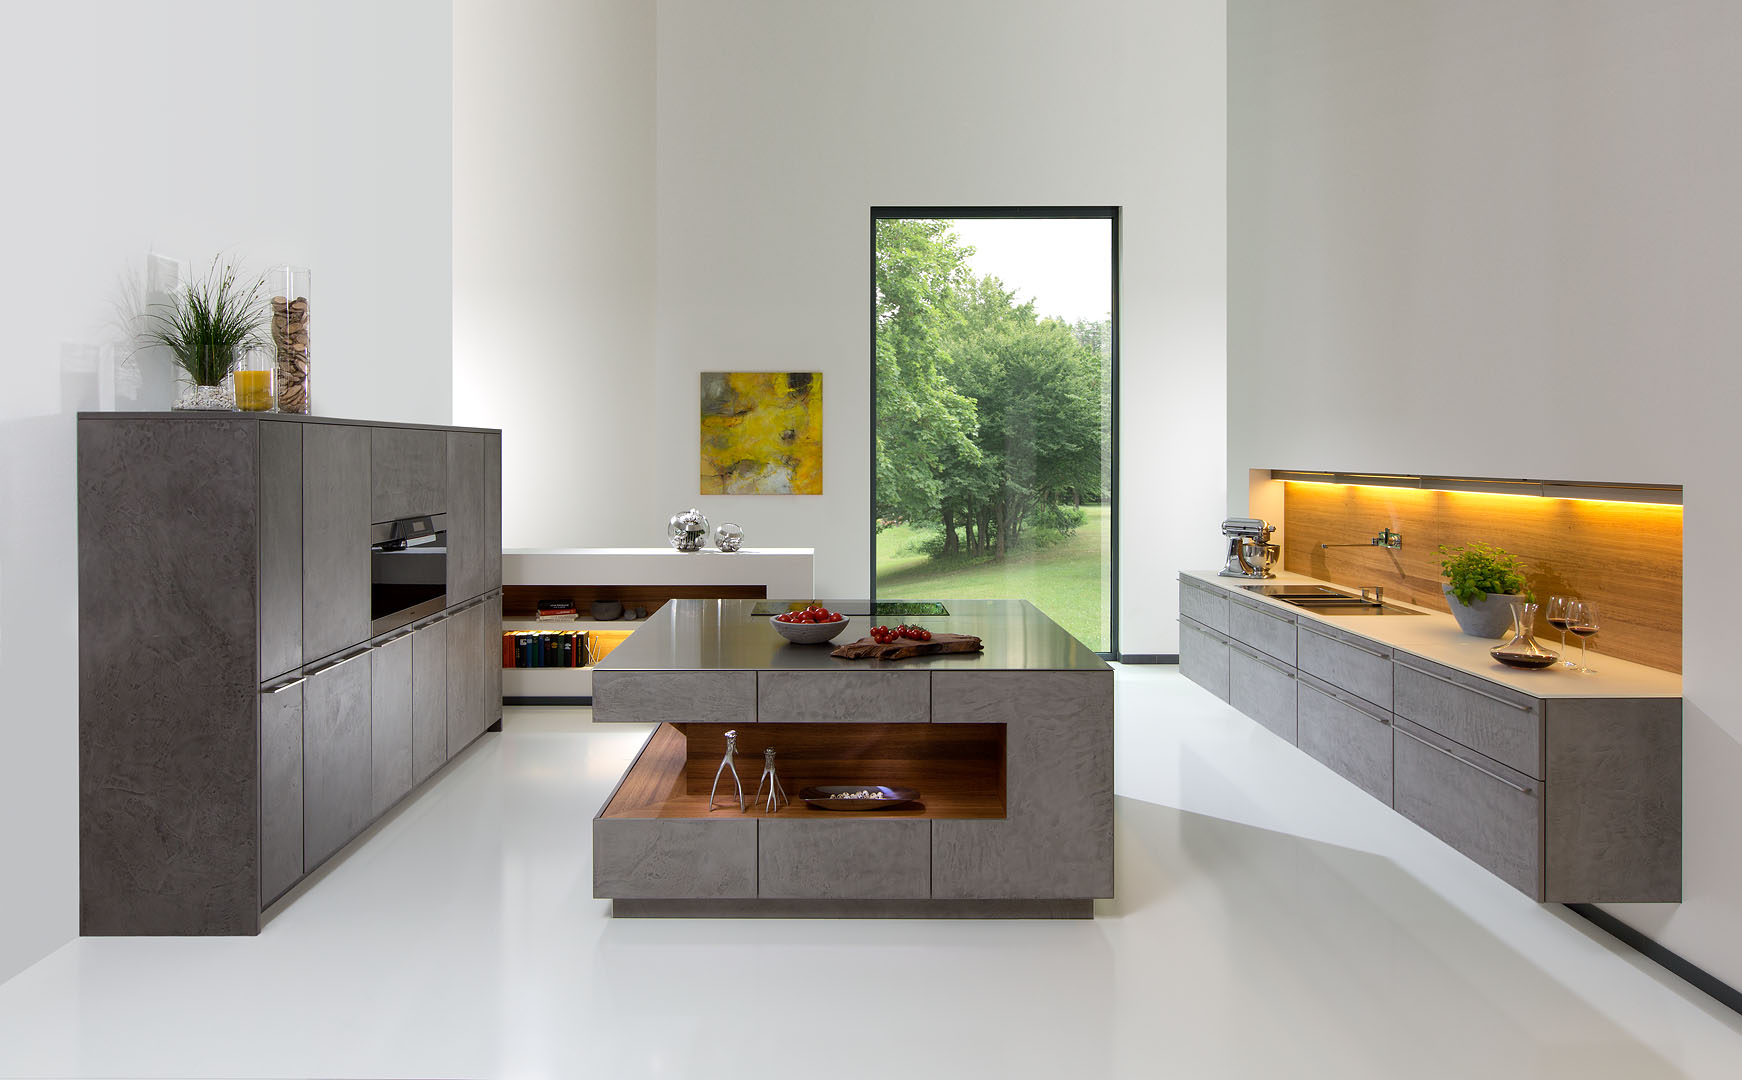 Beautiful Küchen Antik Stil Contemporary - Ridgewayng.com ...